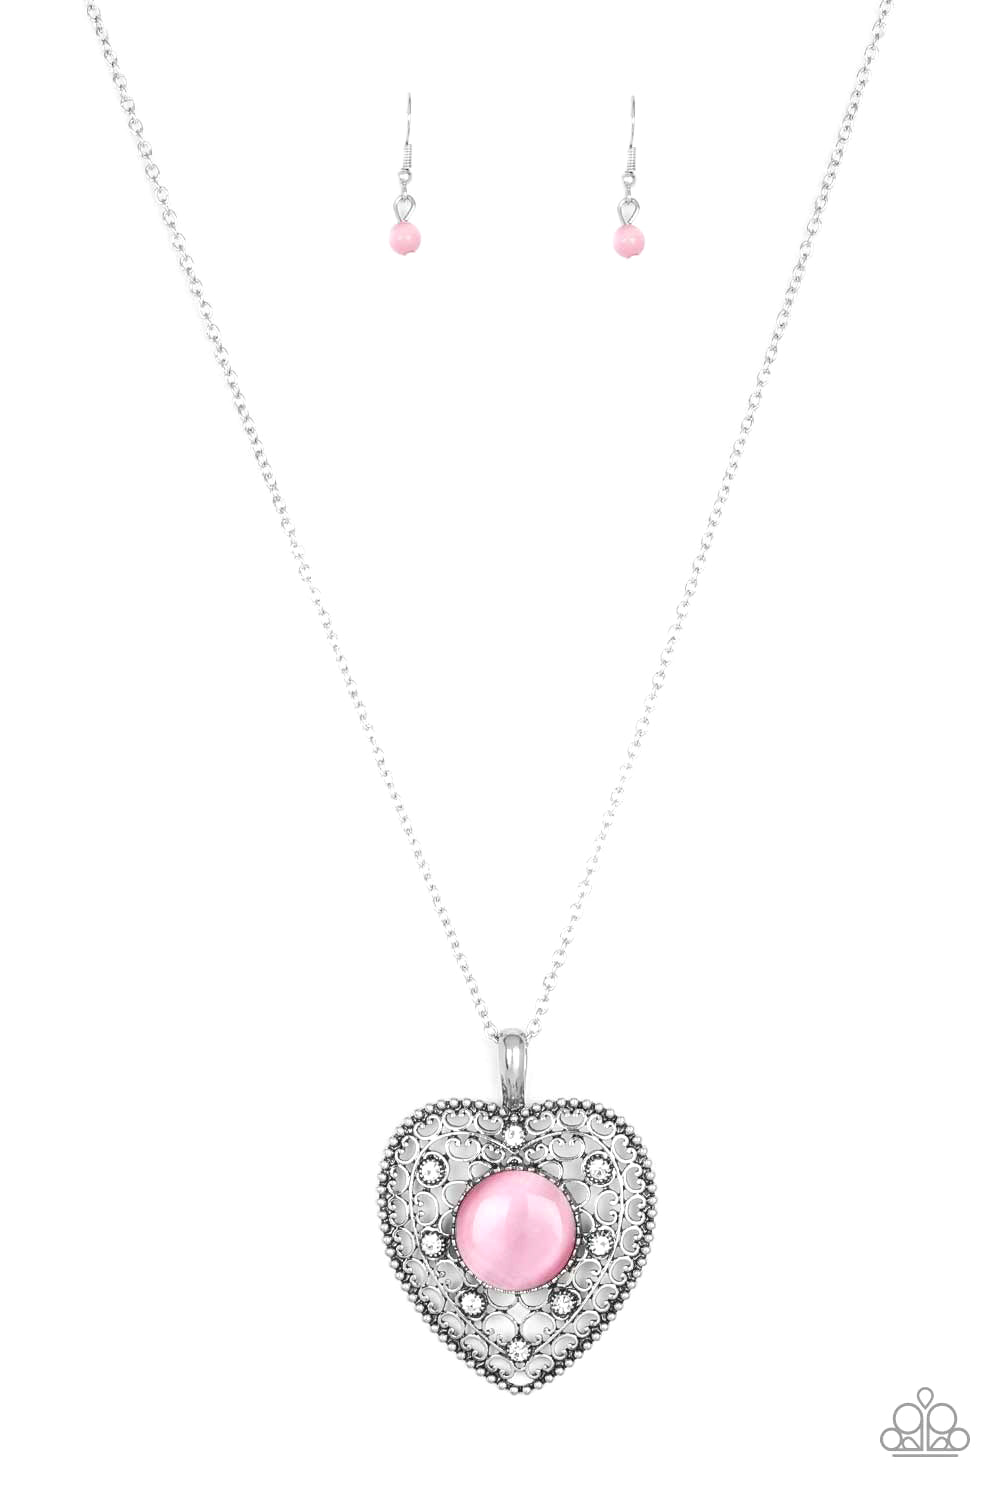 five-dollar-jewelry-one-heart-pink-8874-paparazzi-accessories